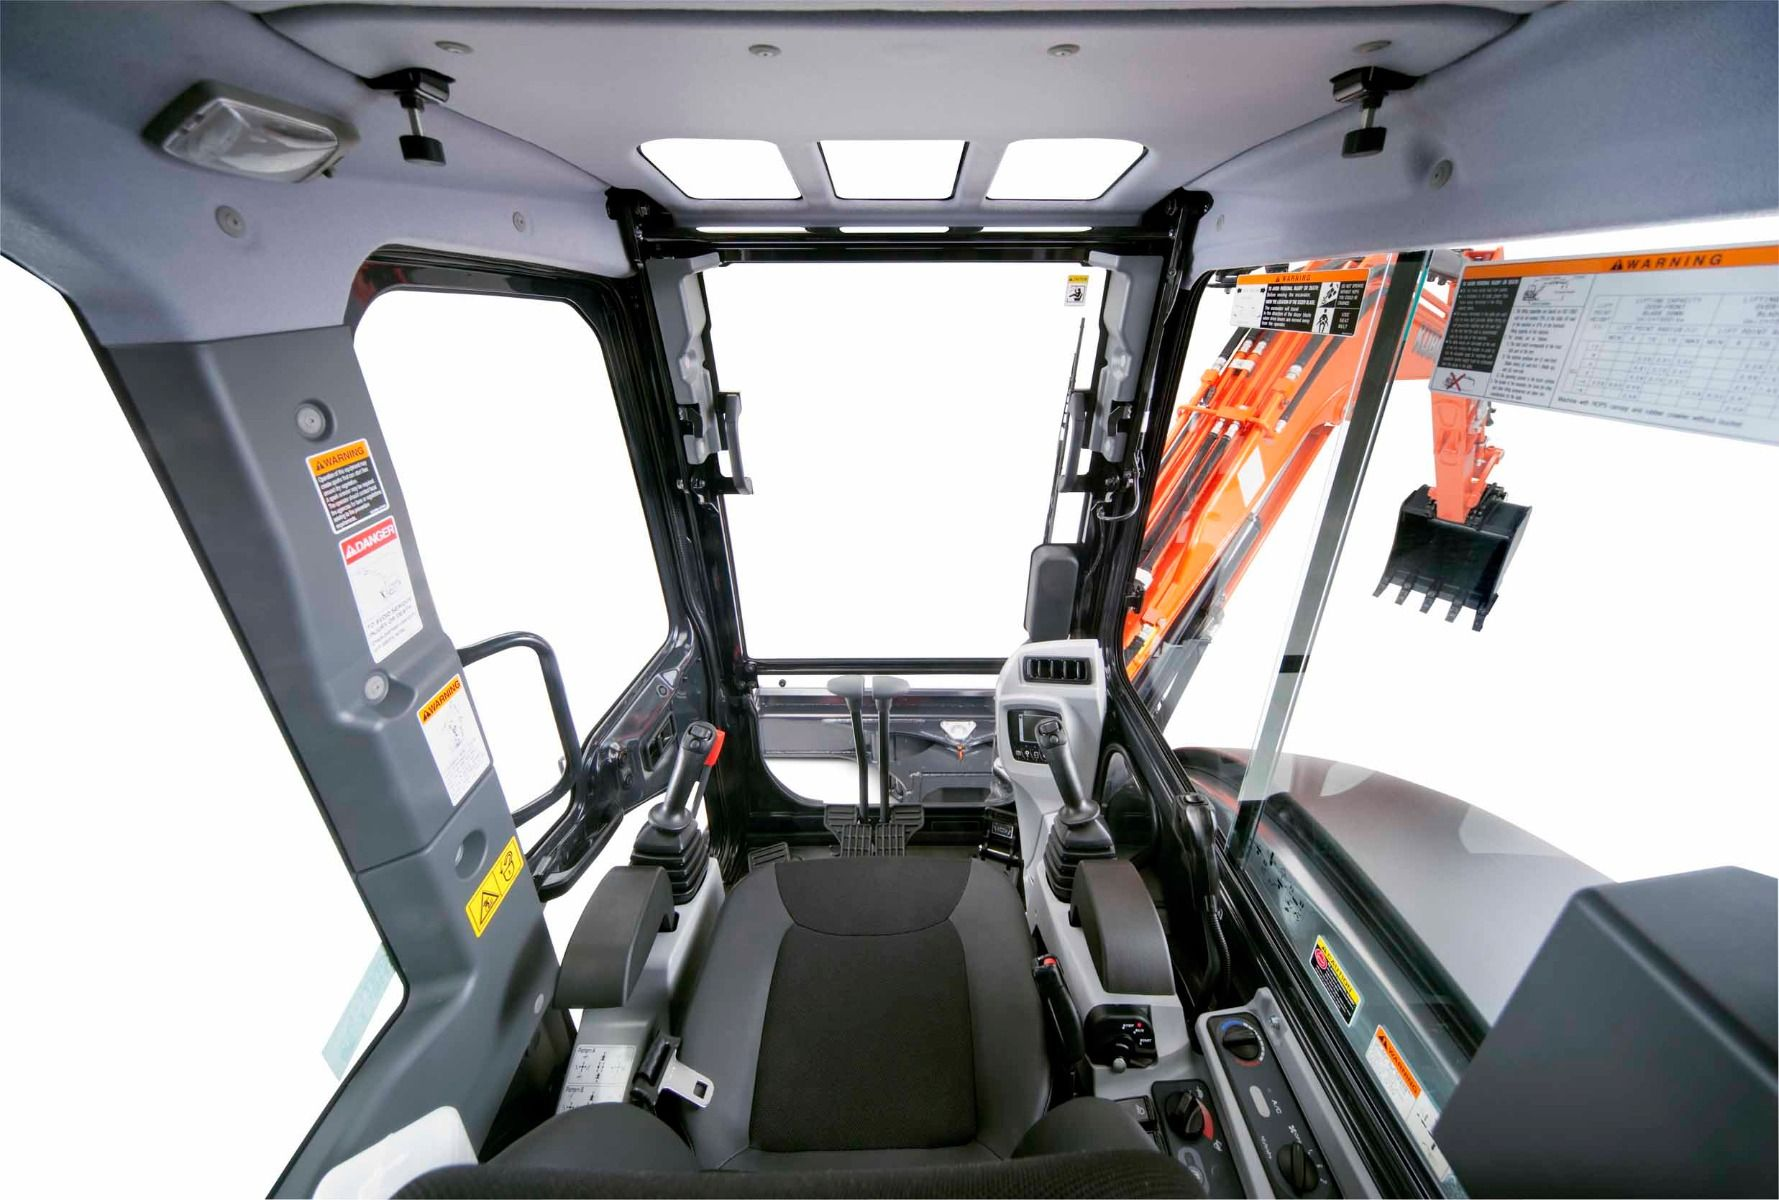 The deluxe cab features improved climate control and air flow, wider entrance, suspension seat,and repositioned instrument panel.